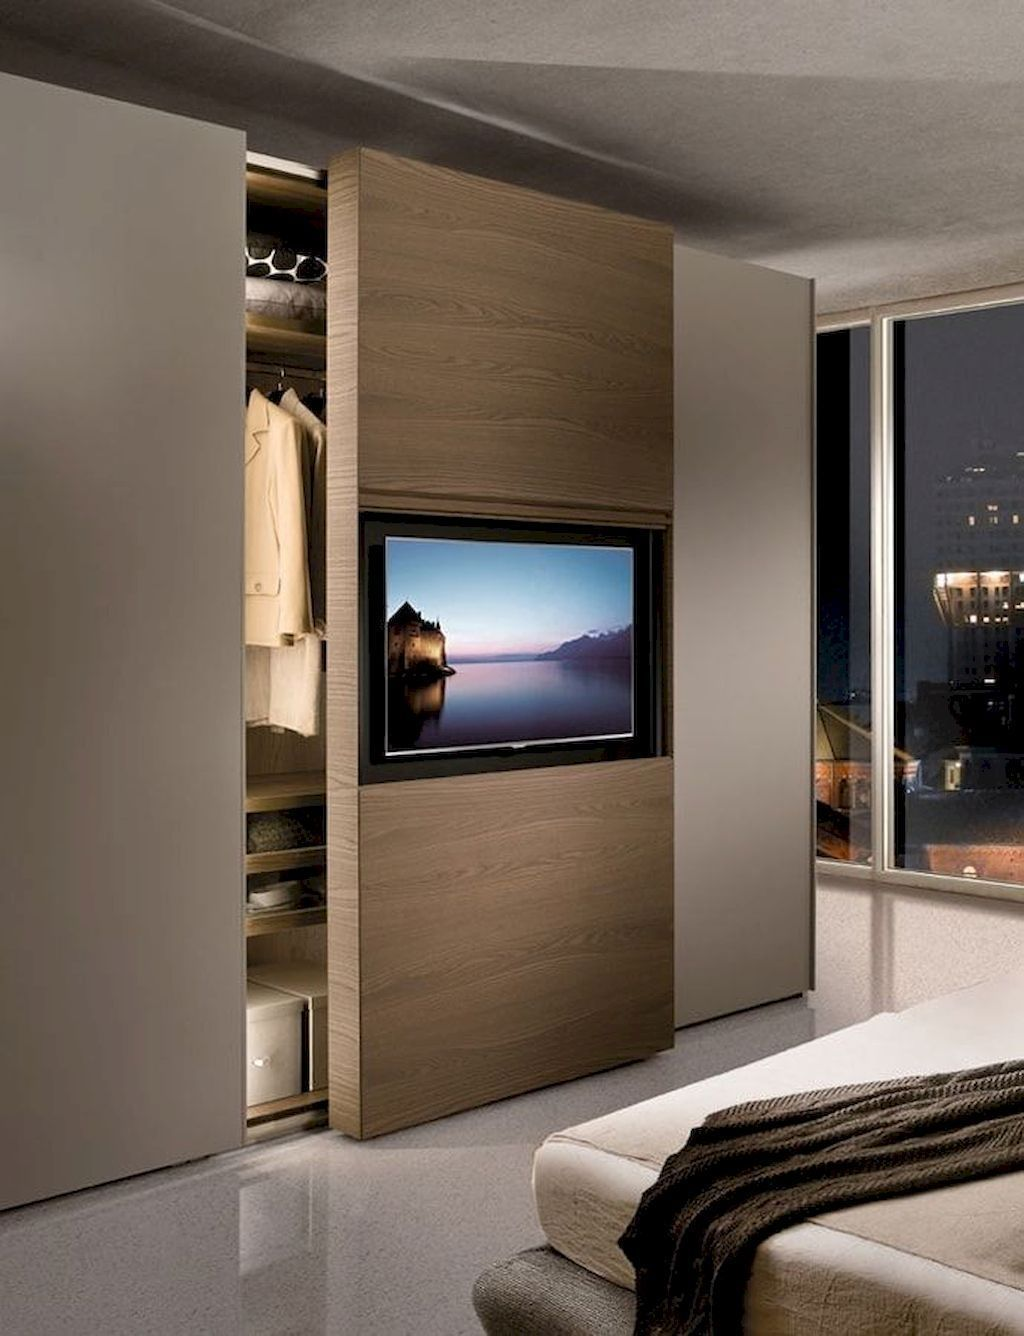 20 Marvelous Bedroom Cabinet Design Ideas For Your Home Inspiration Luxurious Bedrooms Luxury Bedroom Design Bedroom Cabinets